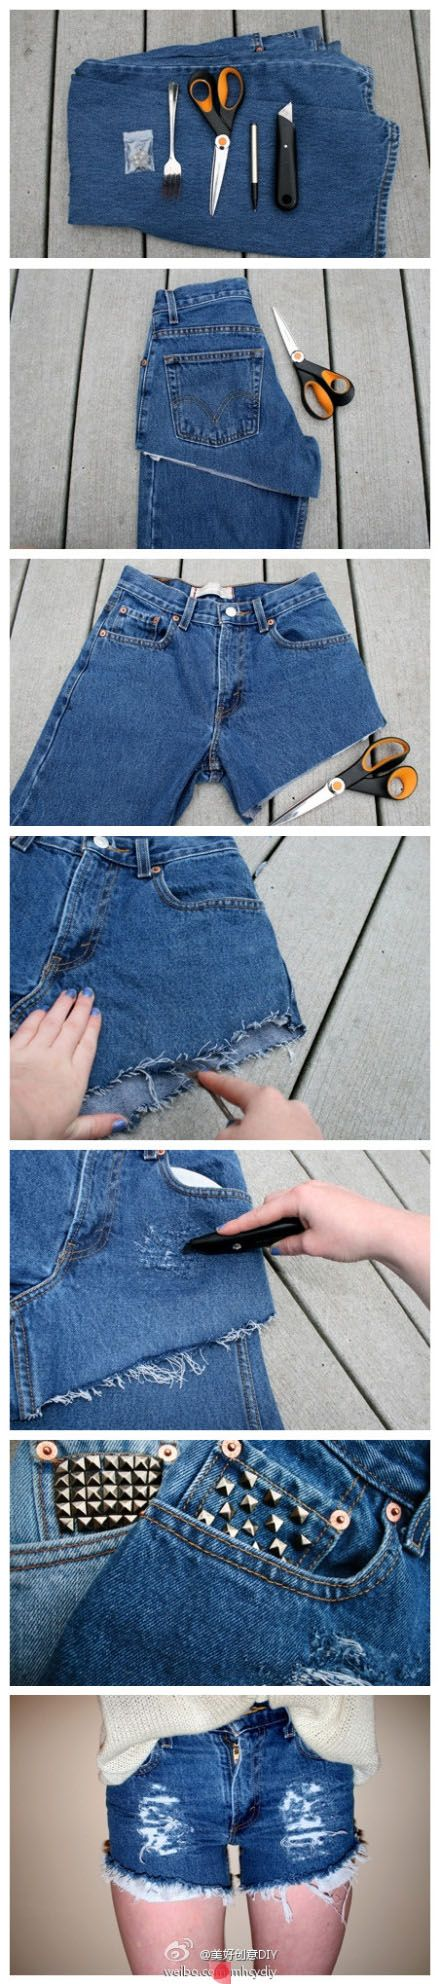 Jeans to shorts DIY. Lovebthe rough denim effect!